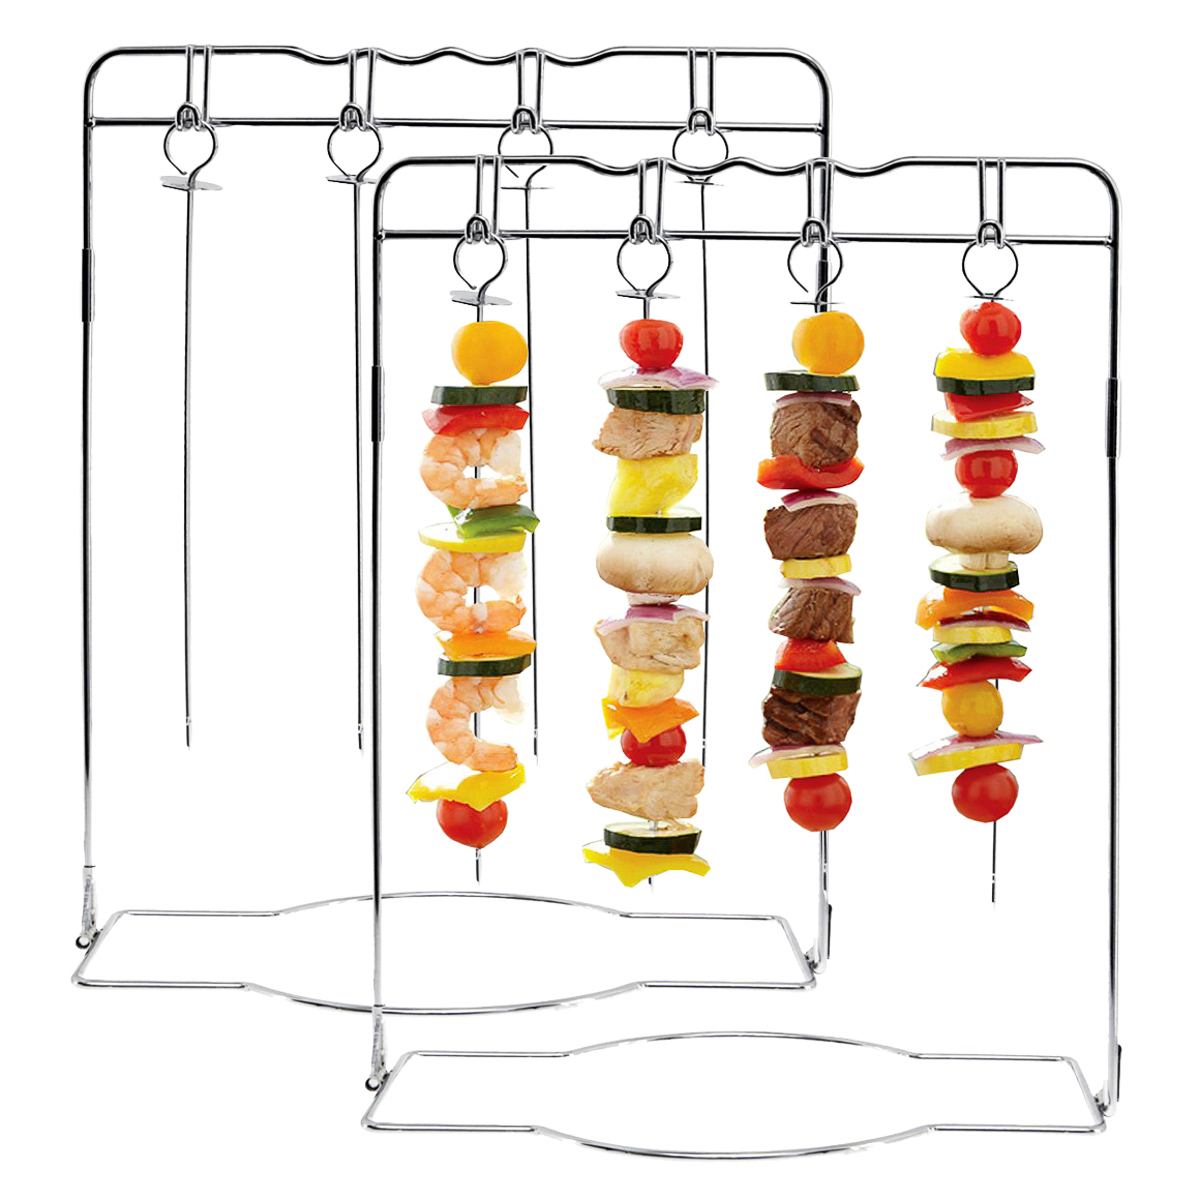 2 Mr. Bar-B-Q Hanging Shish Kabob Skewers Sets Grilling Stand Kebab Barbecue BBQ